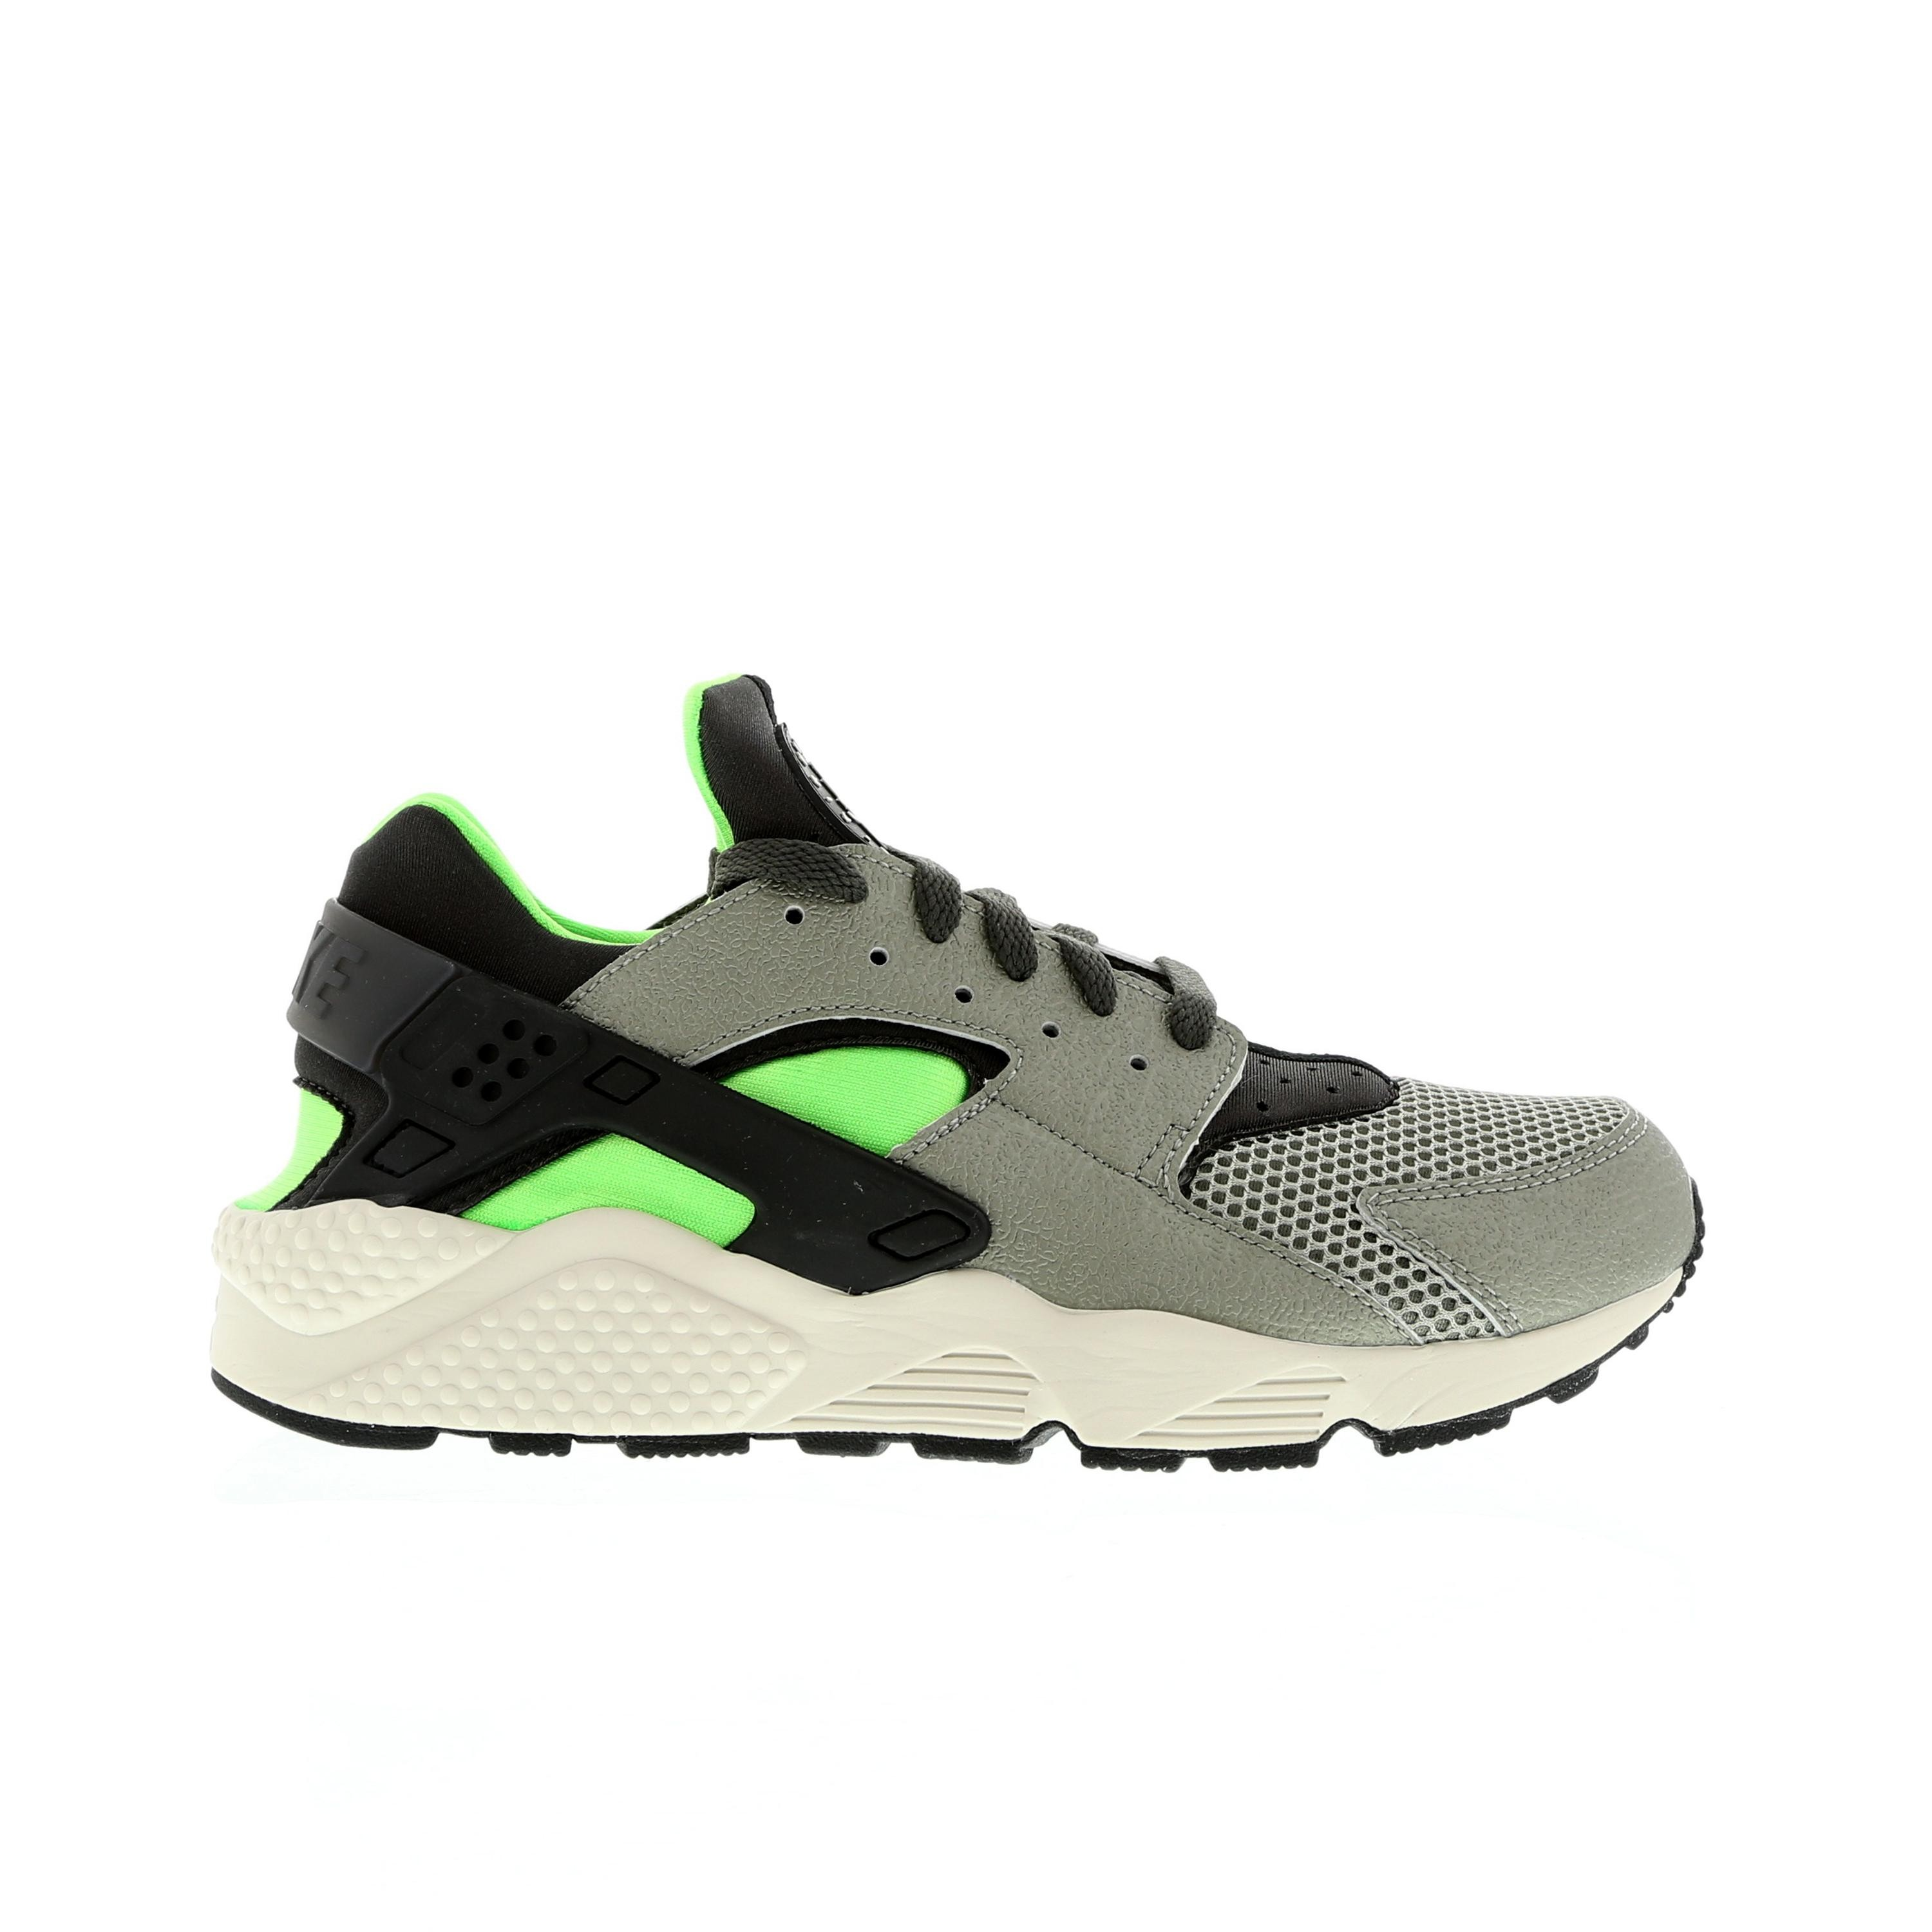 Nike Air Huarache 318429-013 Mine Grey/Mid Fog/Poison Green Mens Shoes